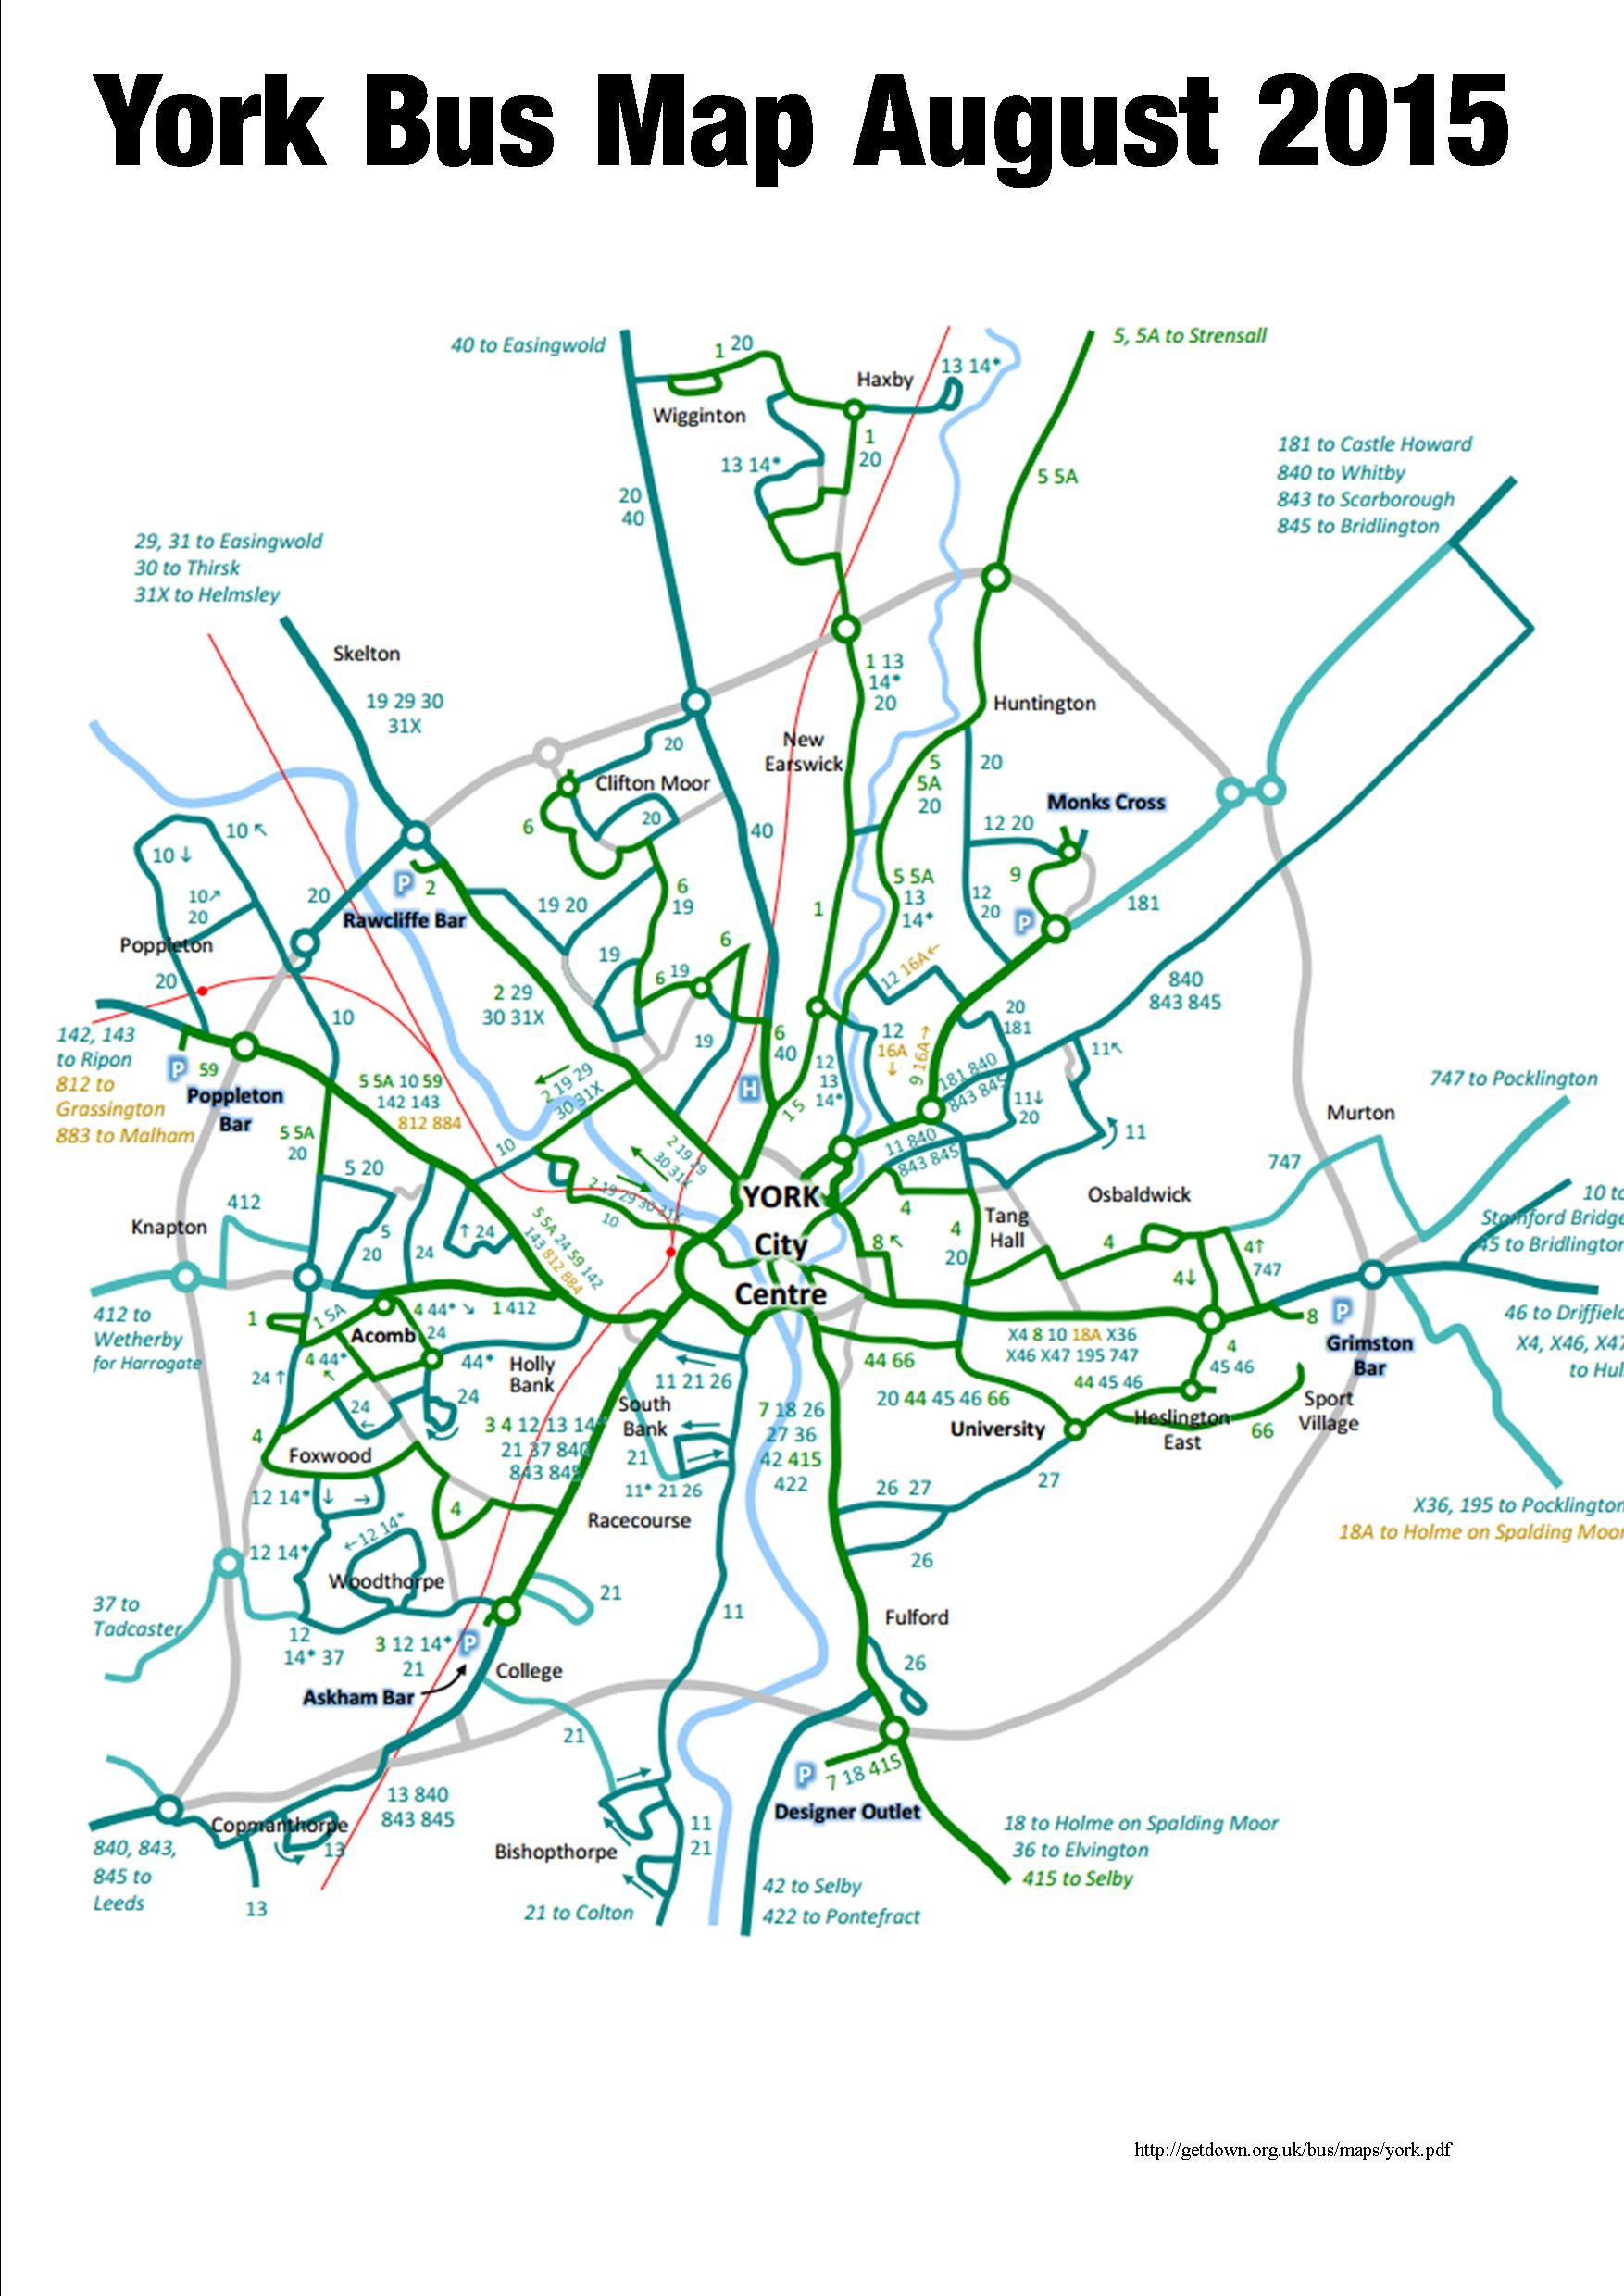 Revised York bus route map Steve Galloway